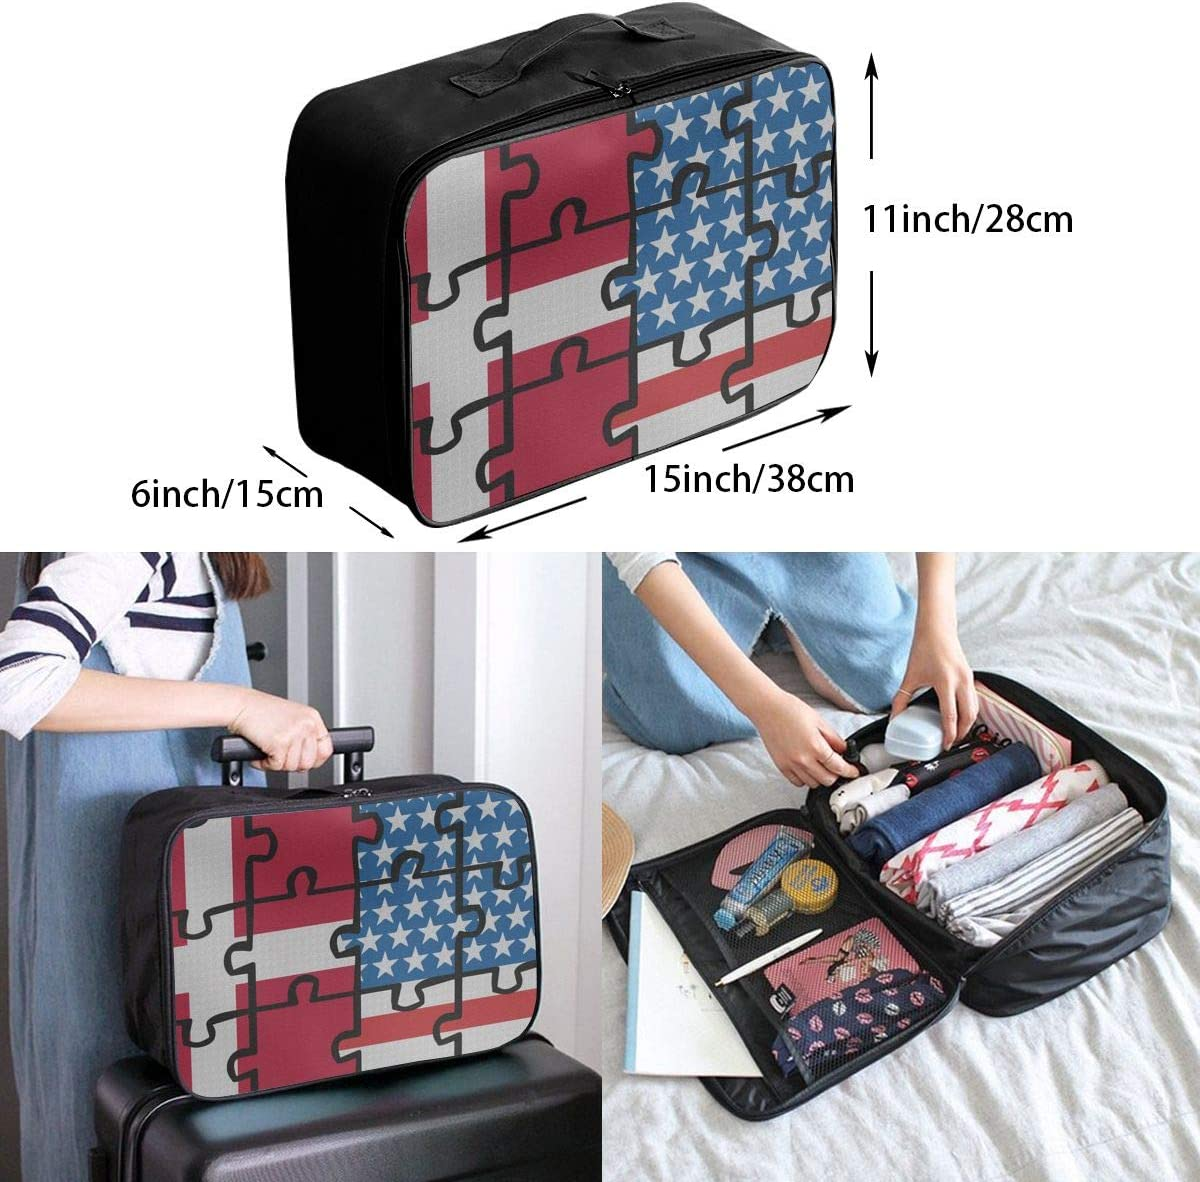 Denmark USA Flag Puzzle Overnight Carry On Luggage Waterproof Fashion Travel Bag Lightweight Suitcases